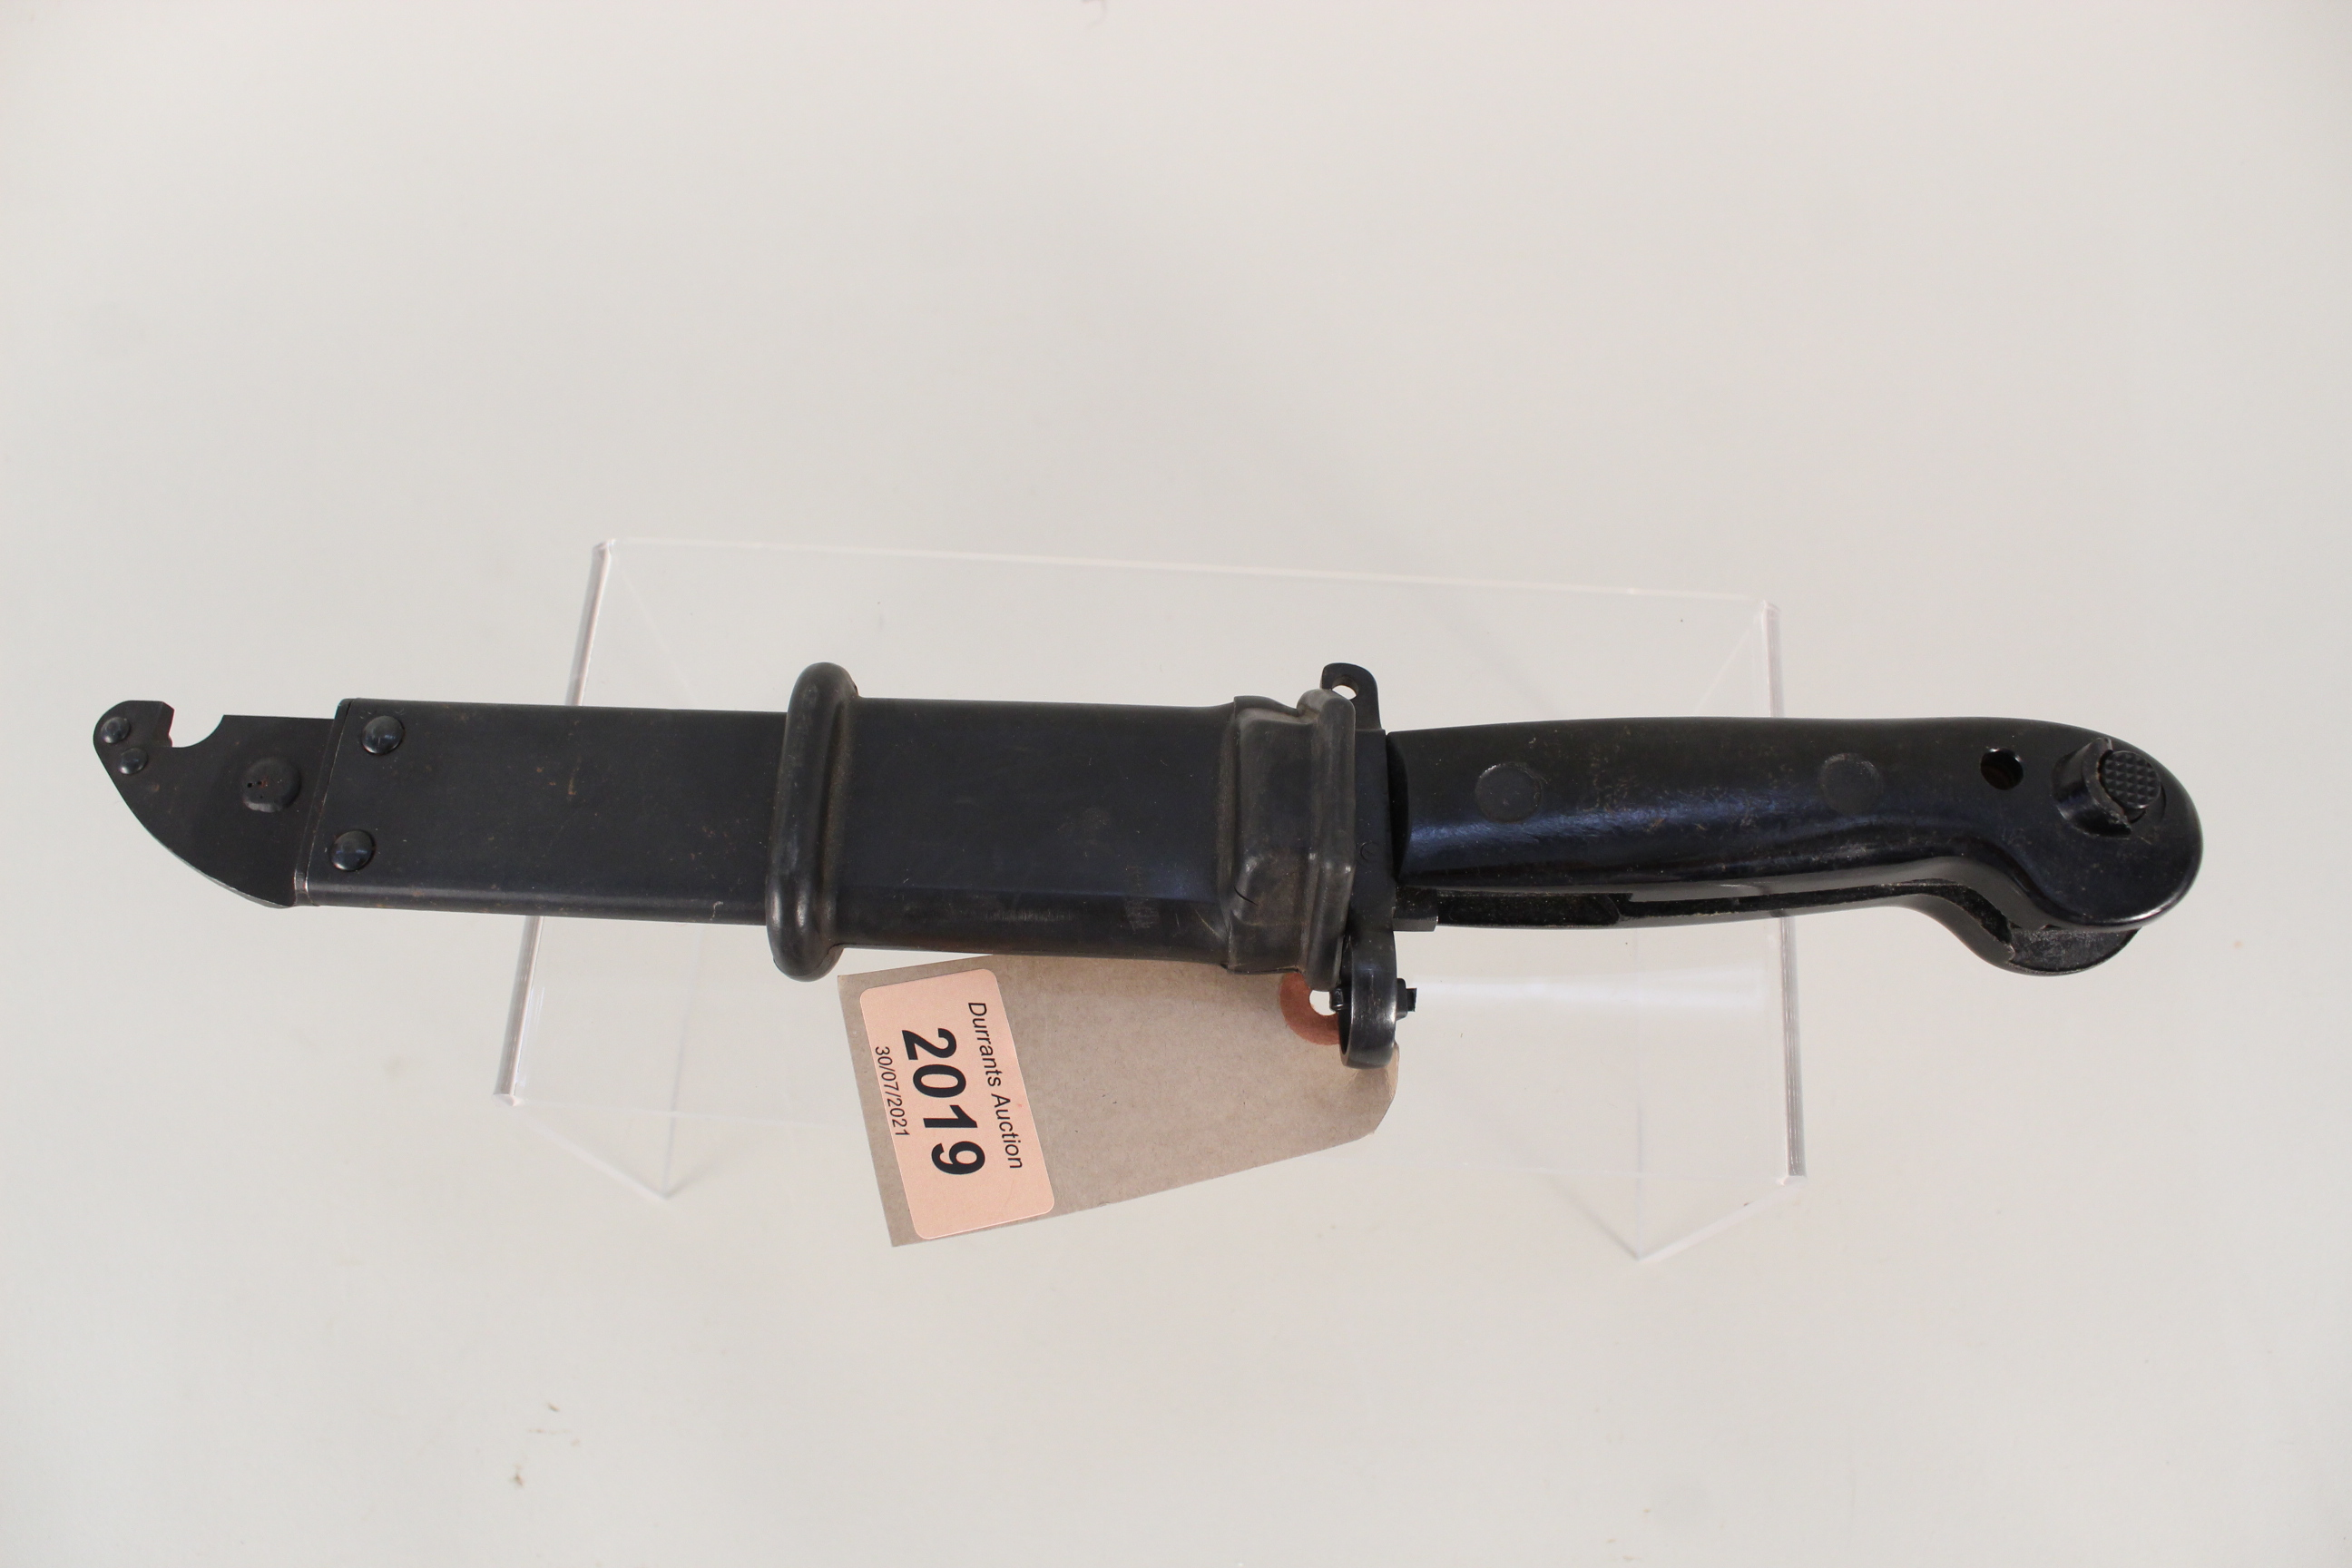 An East German knife bayonet for the model '59' AK, - Image 3 of 4